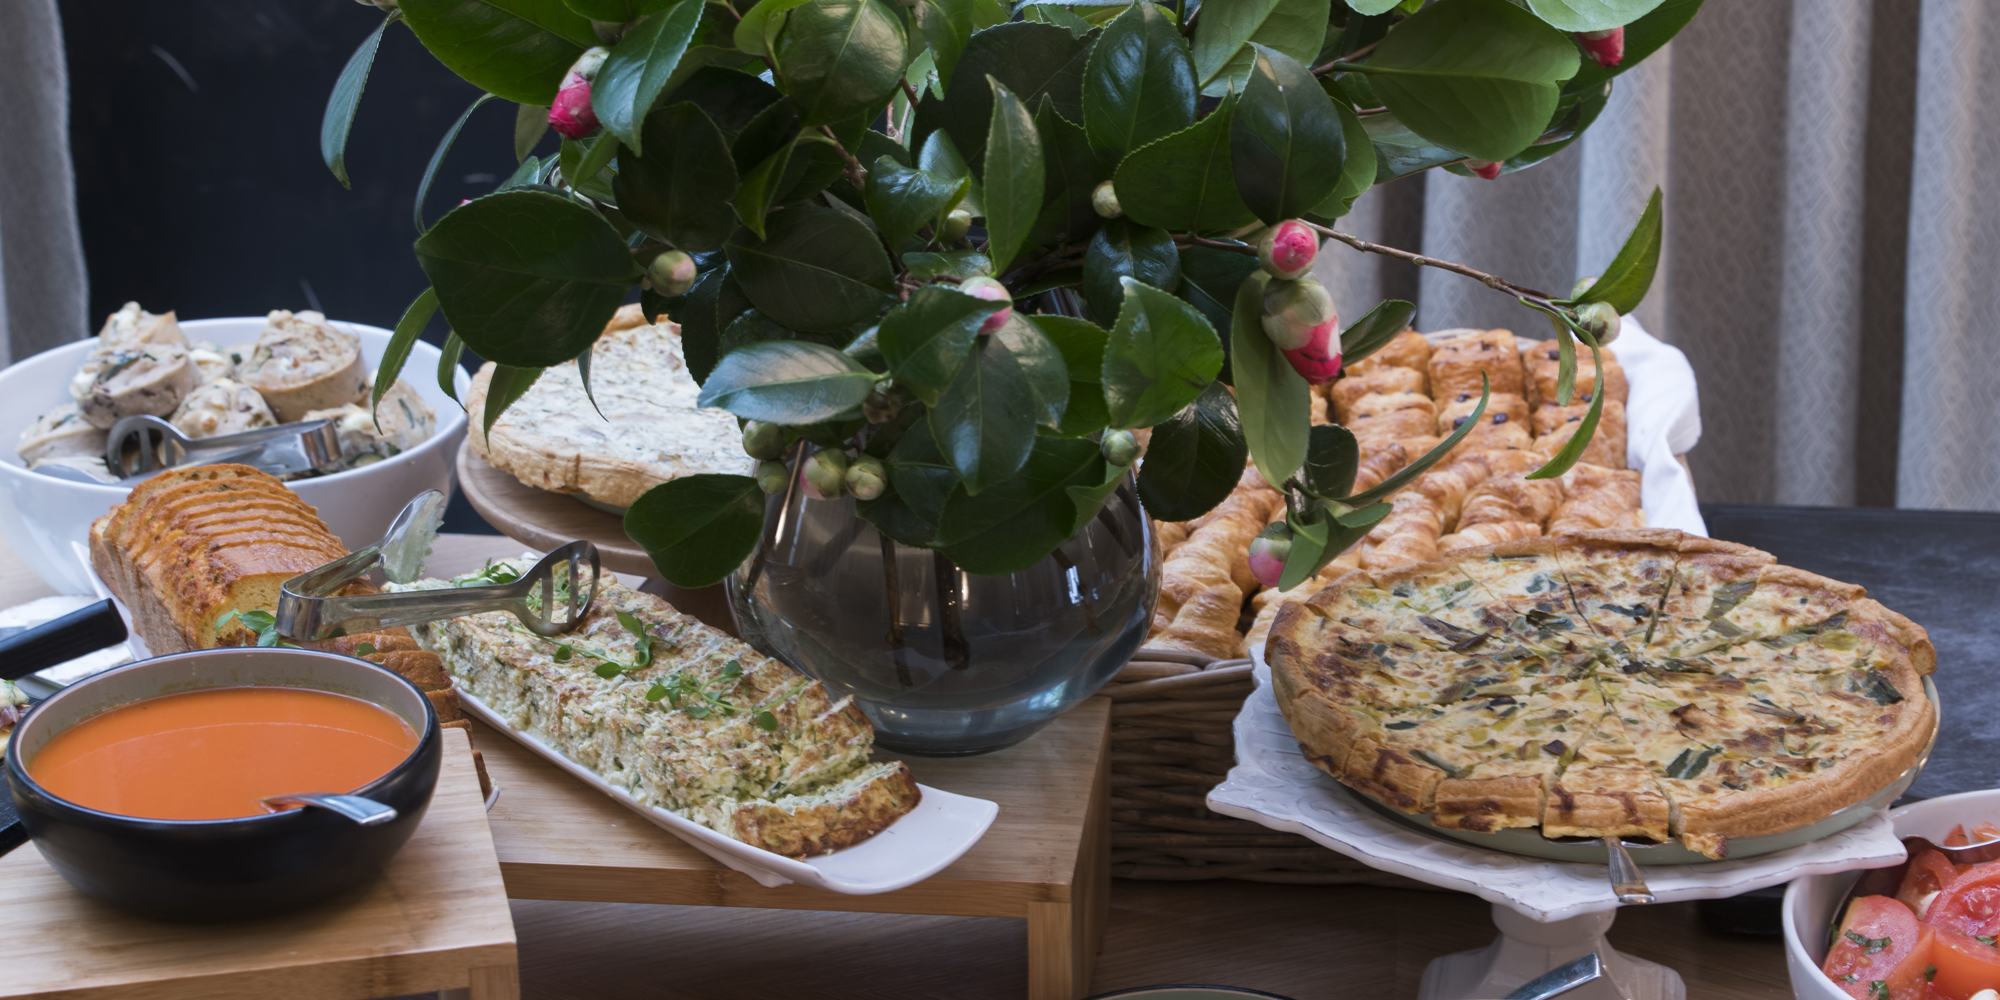 Brunch Klay Saint Sauveur (75002 Paris)